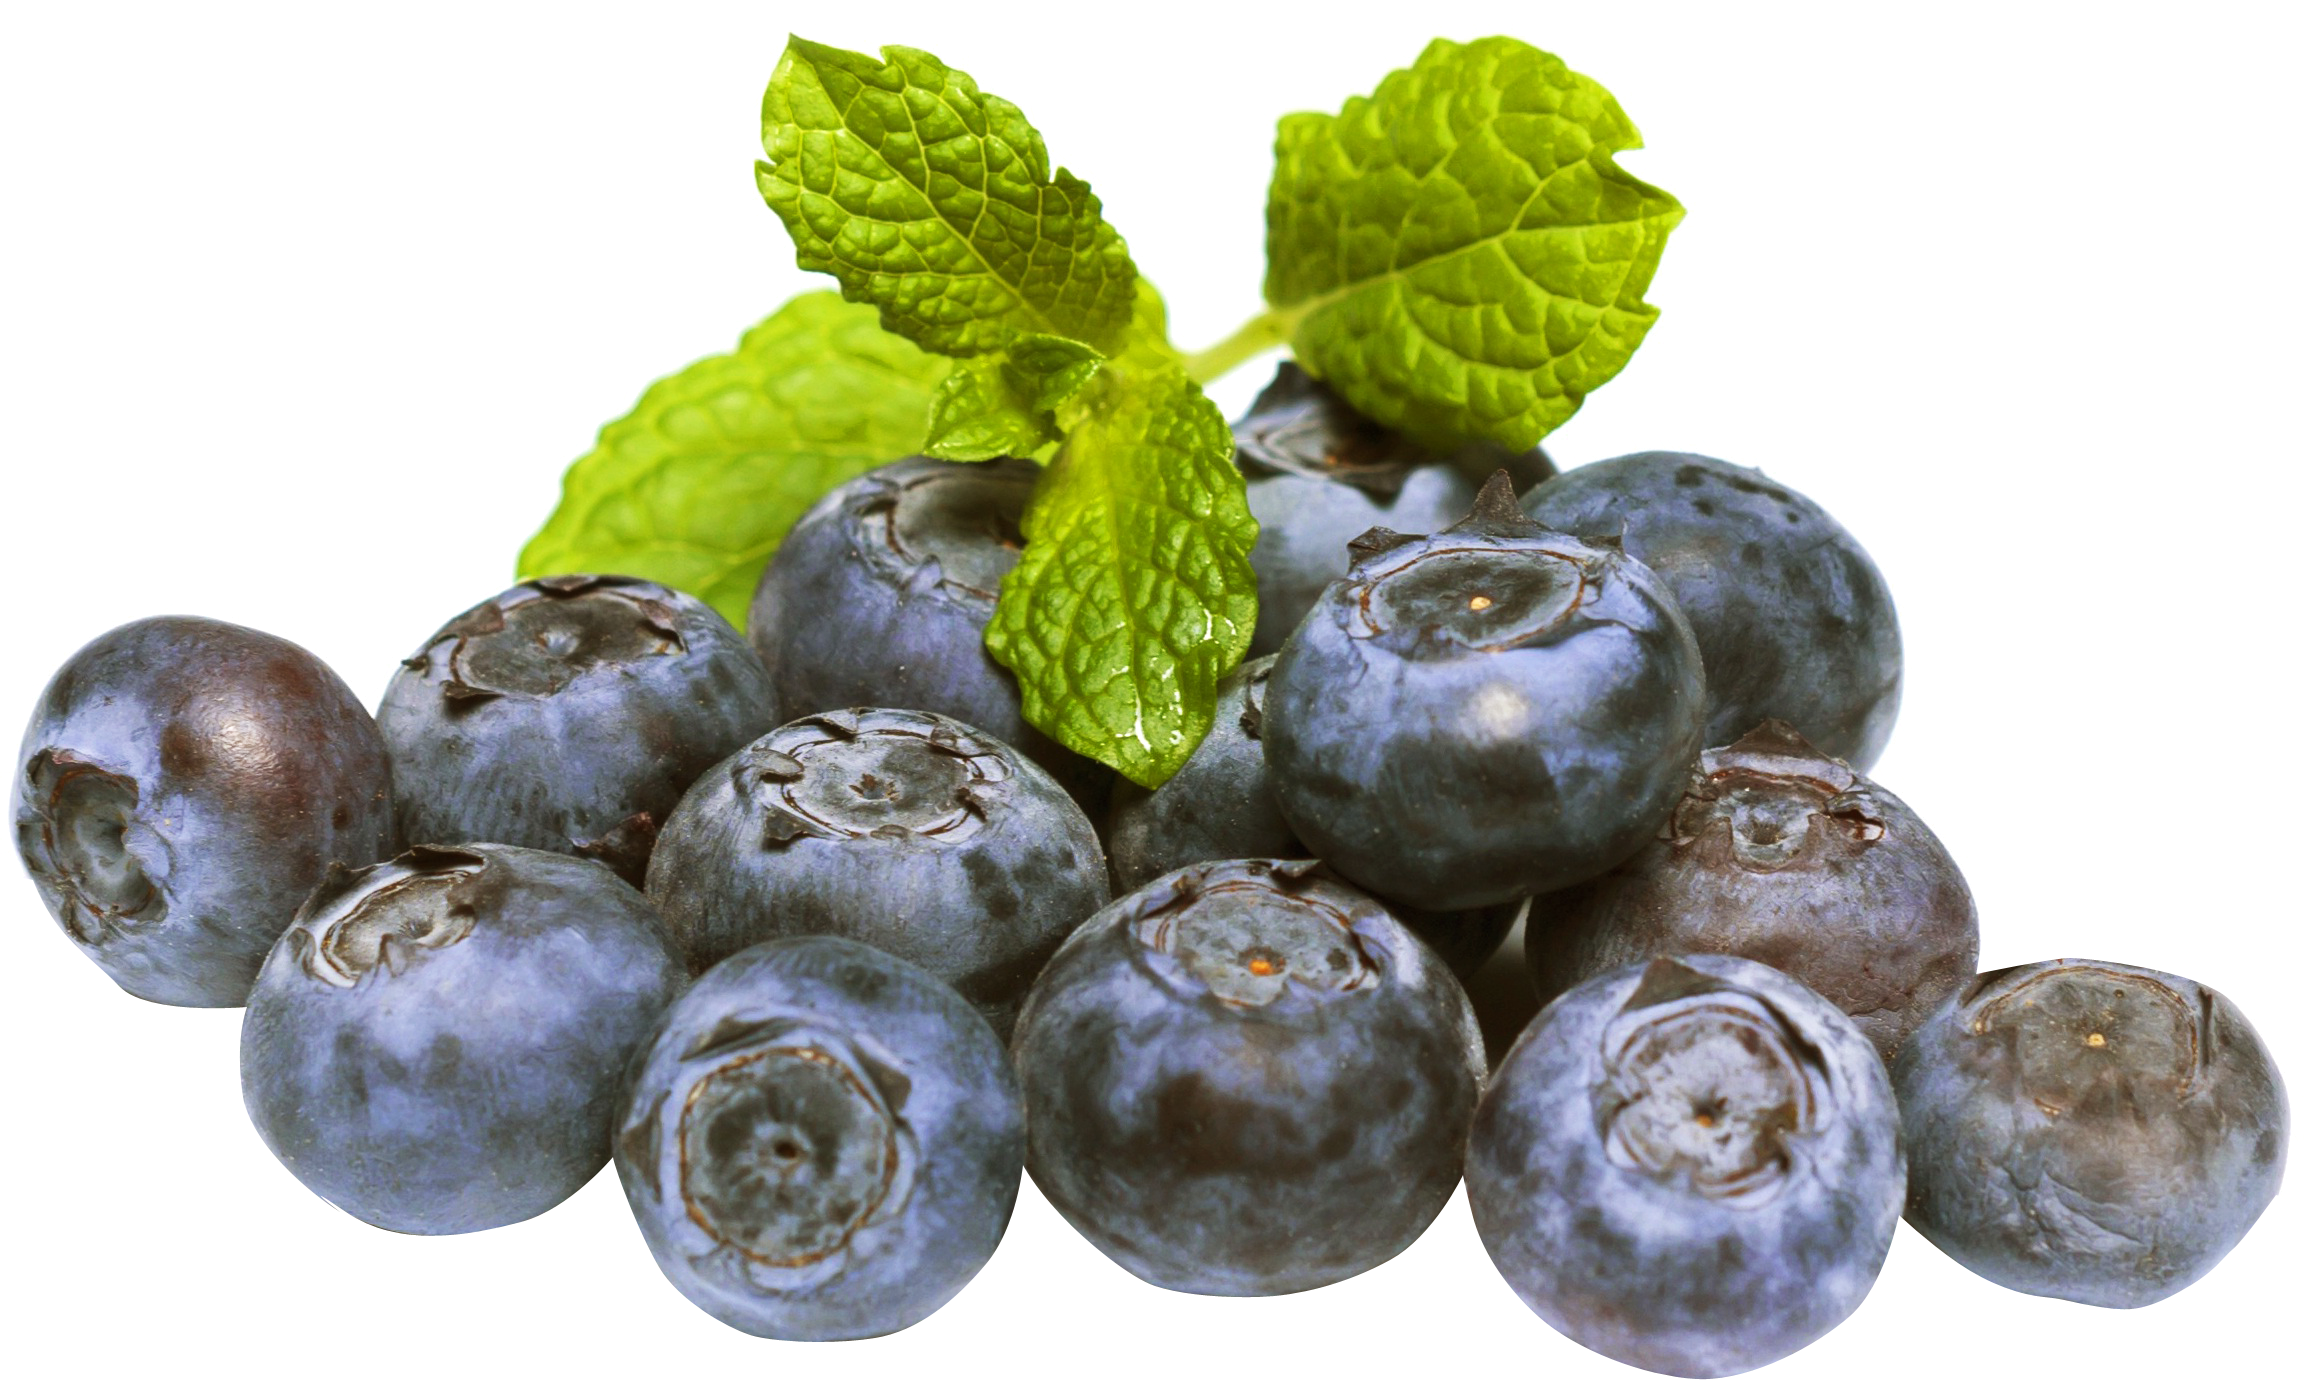 Blueberries PNG Image.